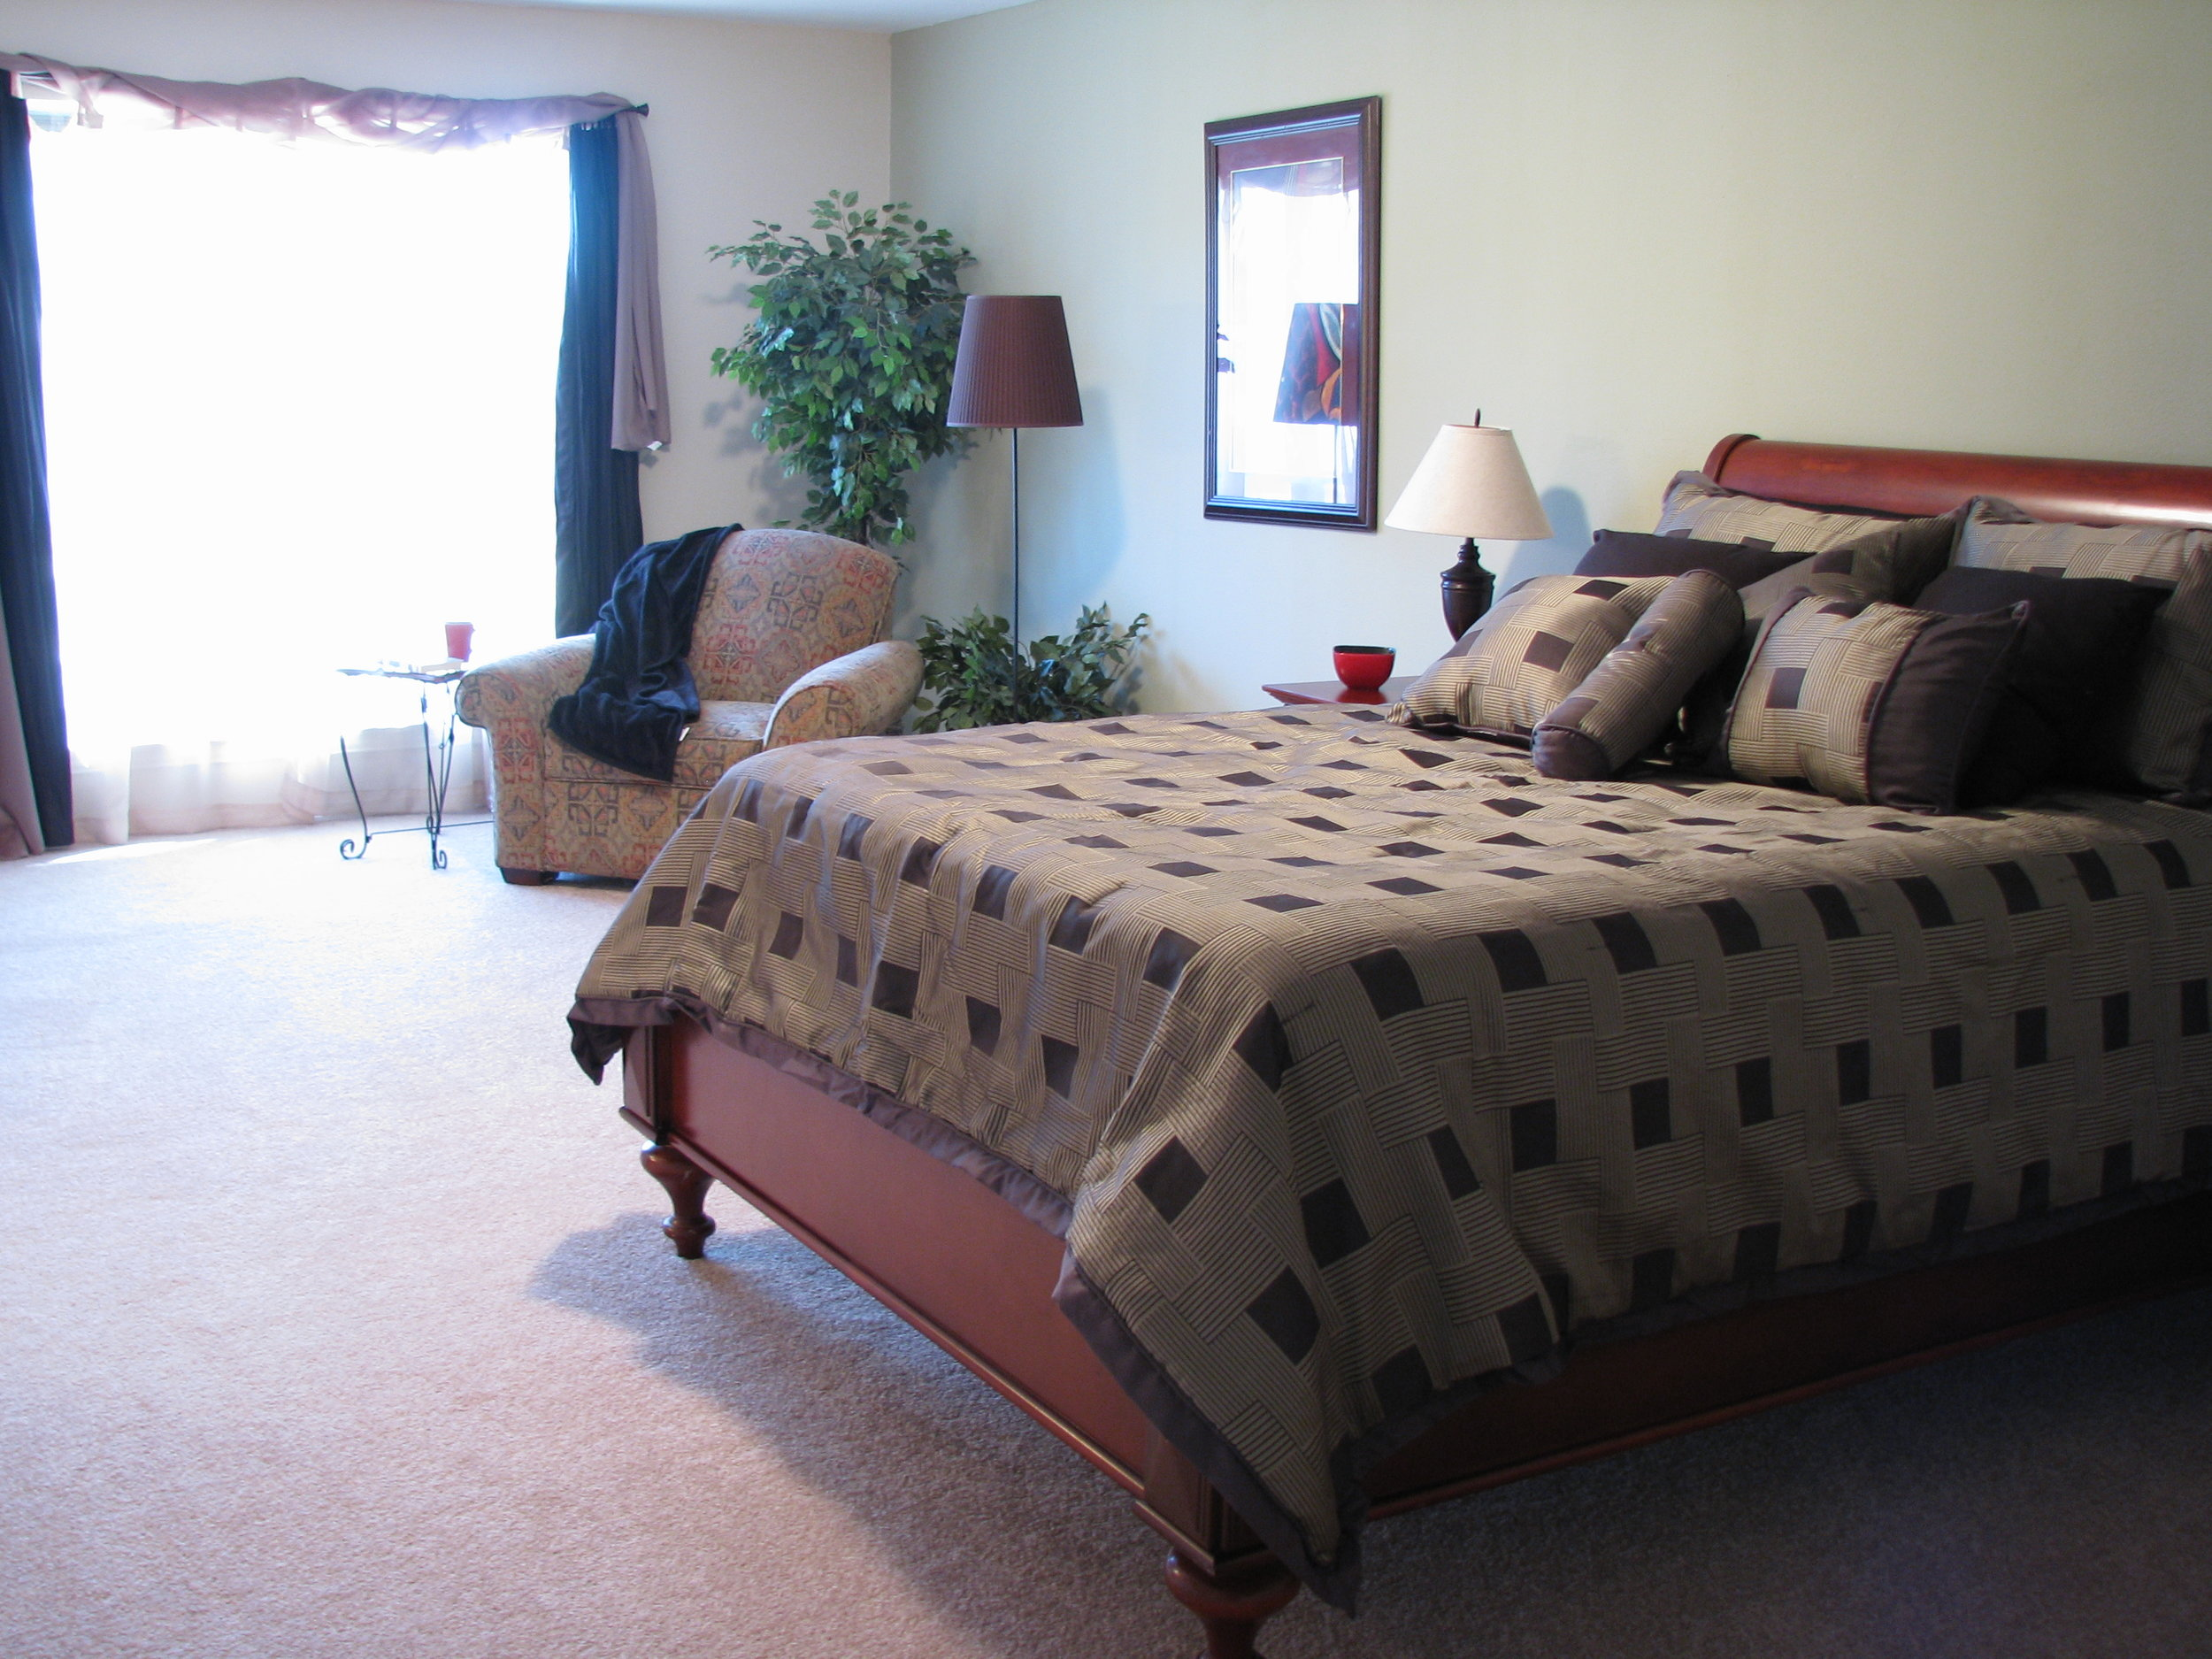 Master bedroom after new paint, carpet, window coverings and of course staging